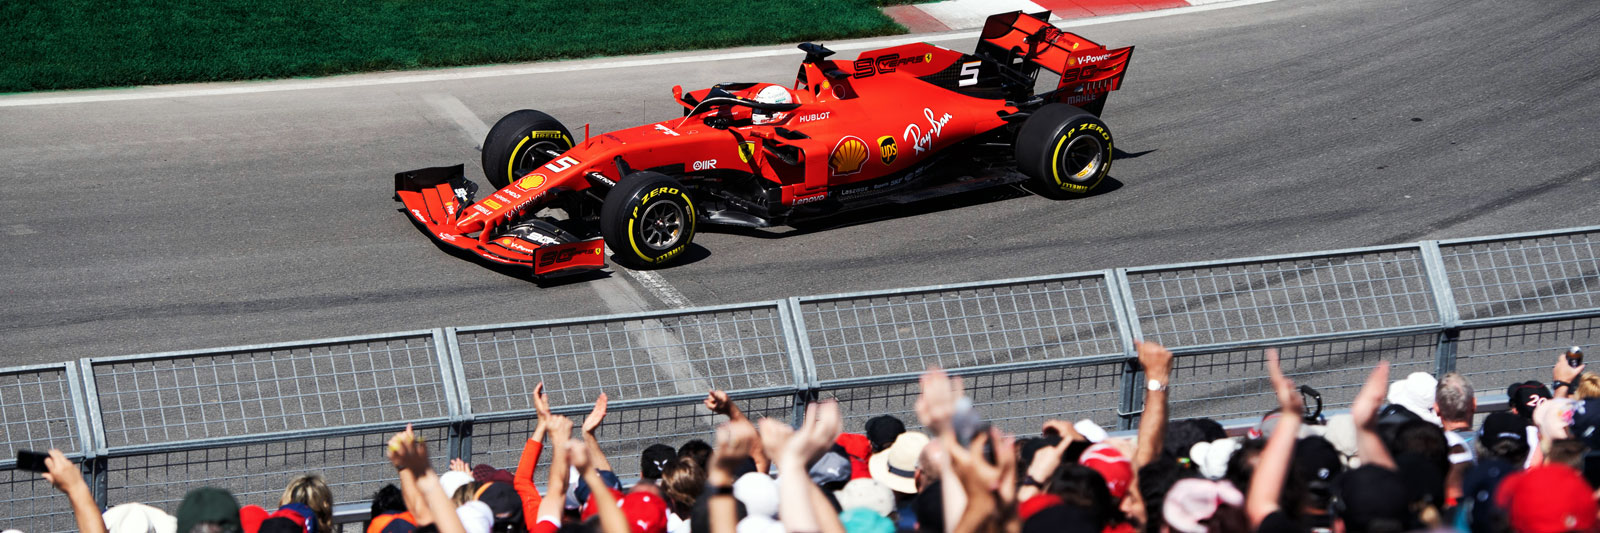 Ferrari F1 Club Tickets from Grand Prix Tours